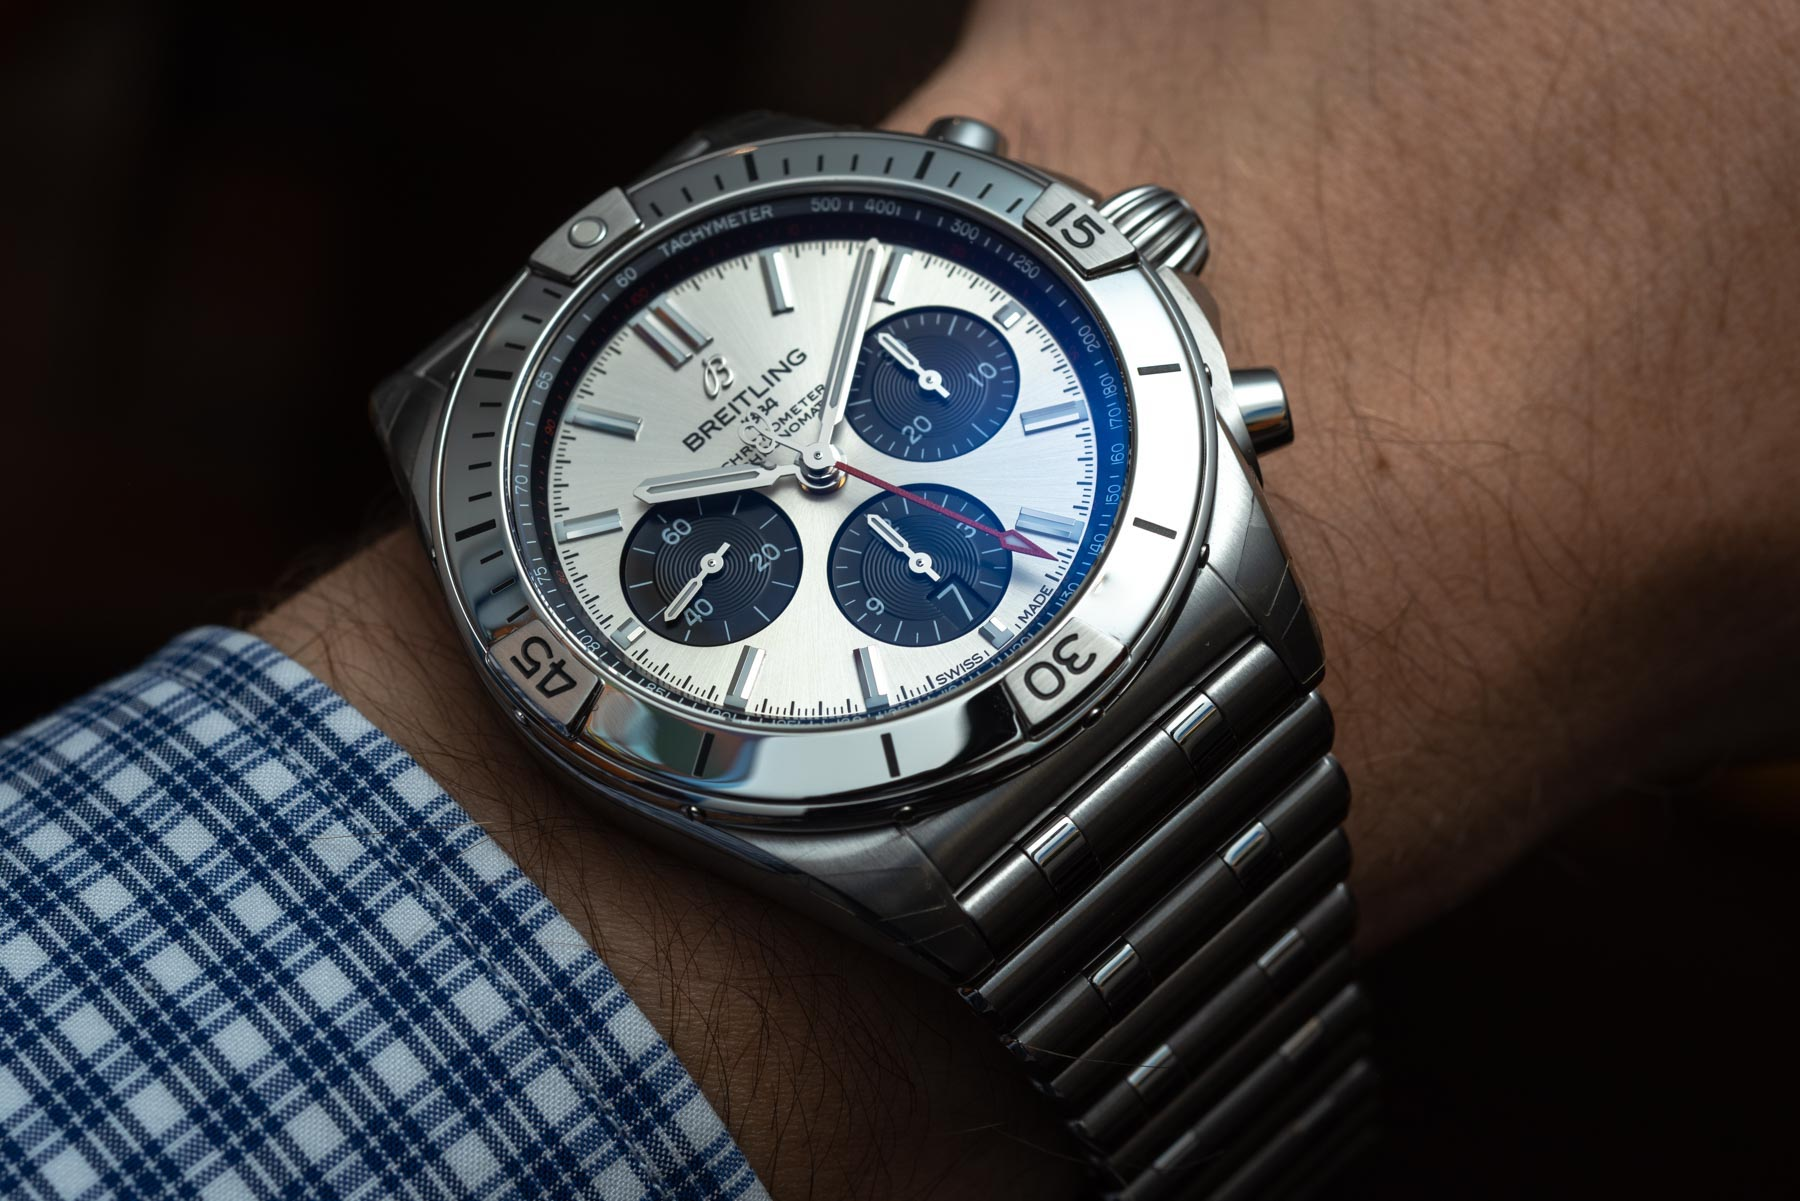 The Breitling Chronomat copy watches are with high cost performance.